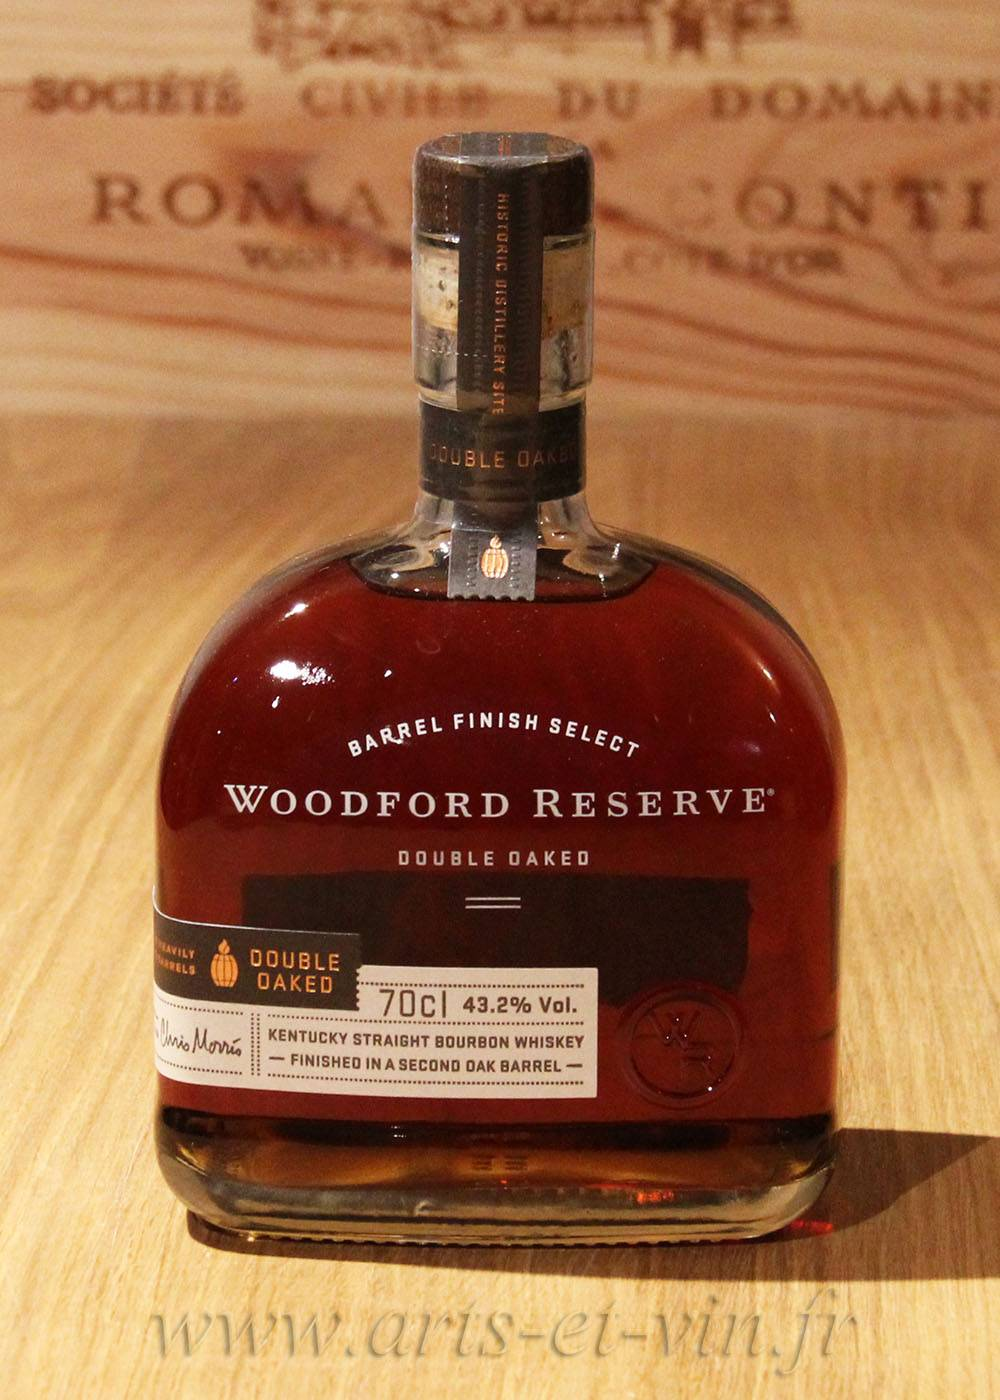 Spiritueux Whisky Blend Woodford Reserve Double Oaked - USA 43.2°